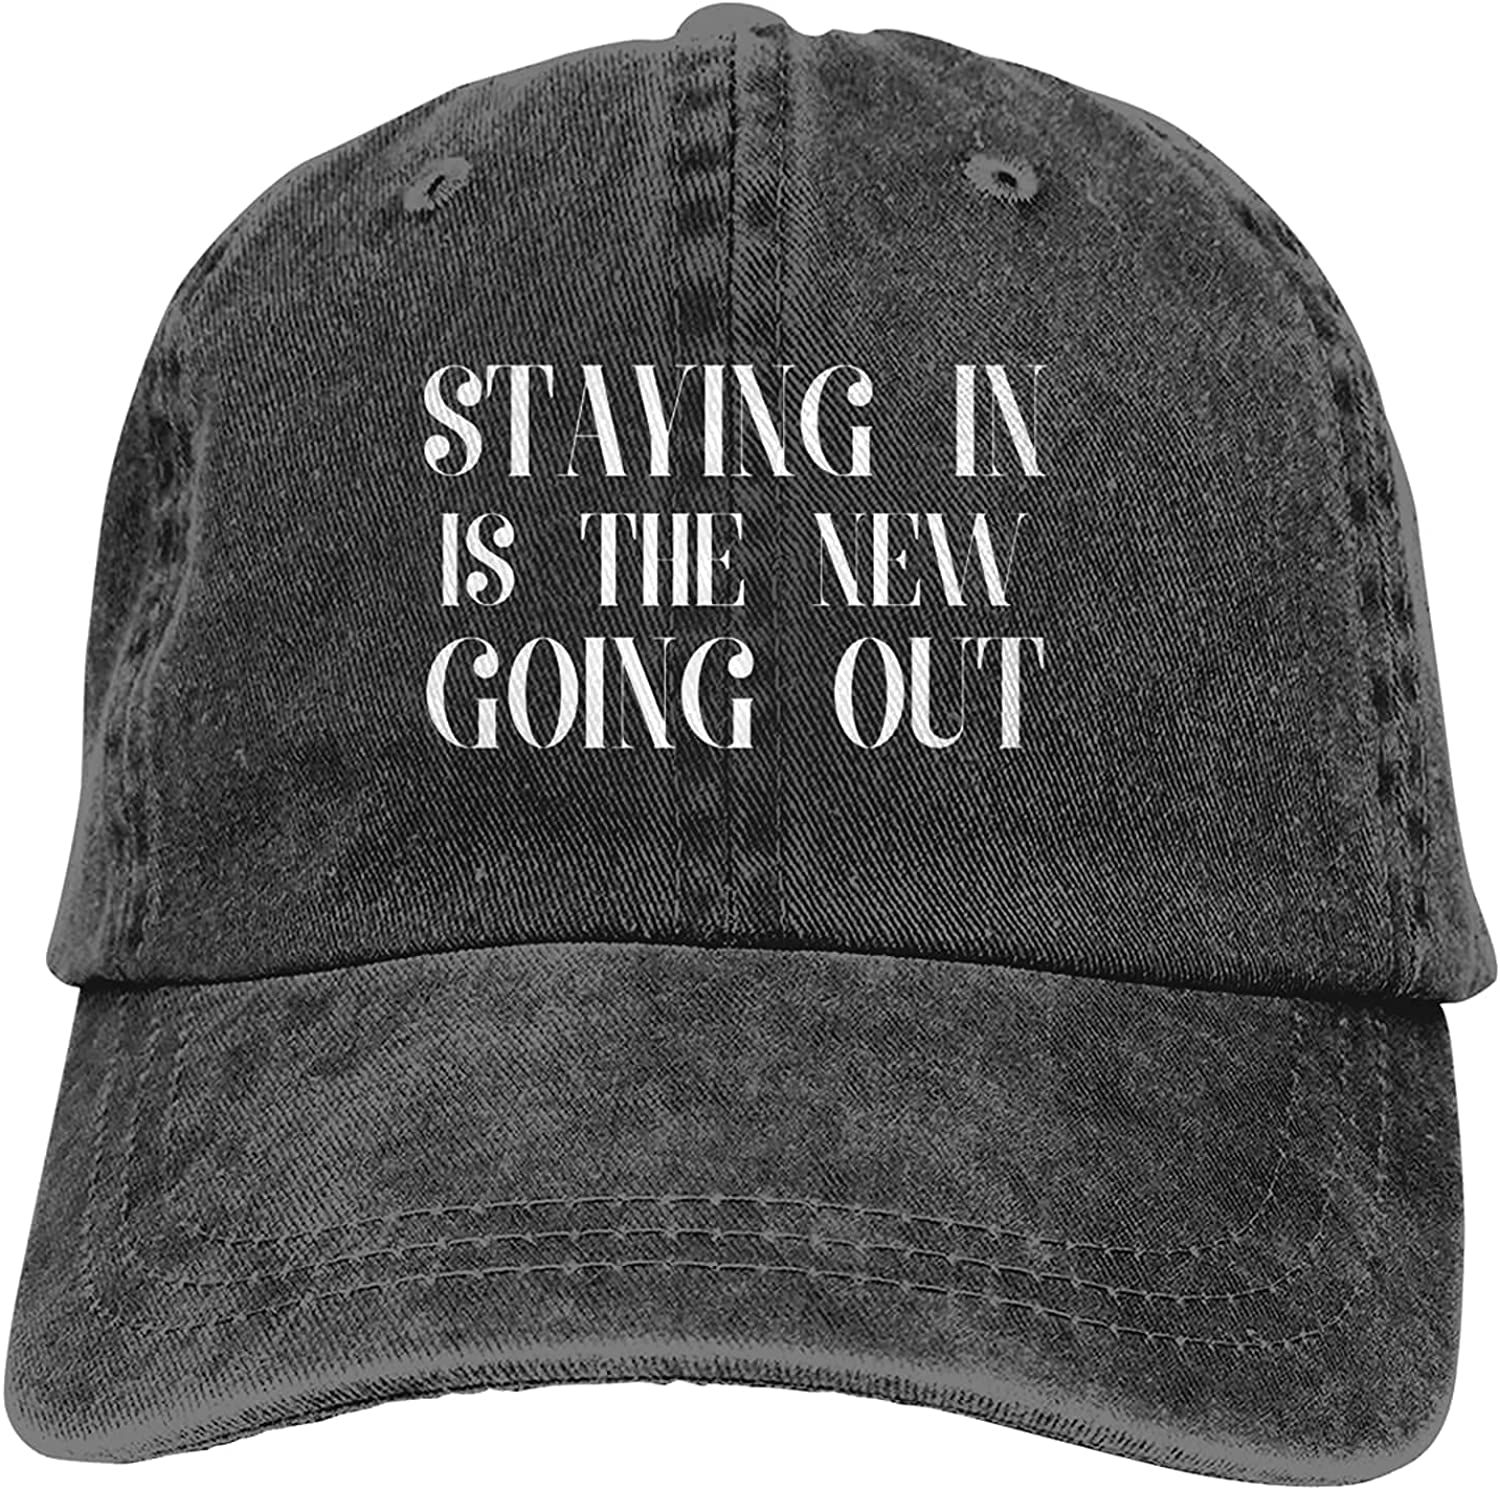 Staying in is The New Going Out Adjustable Washed Dad Hat Cowboy Cap Denim Cap Baseball Cap